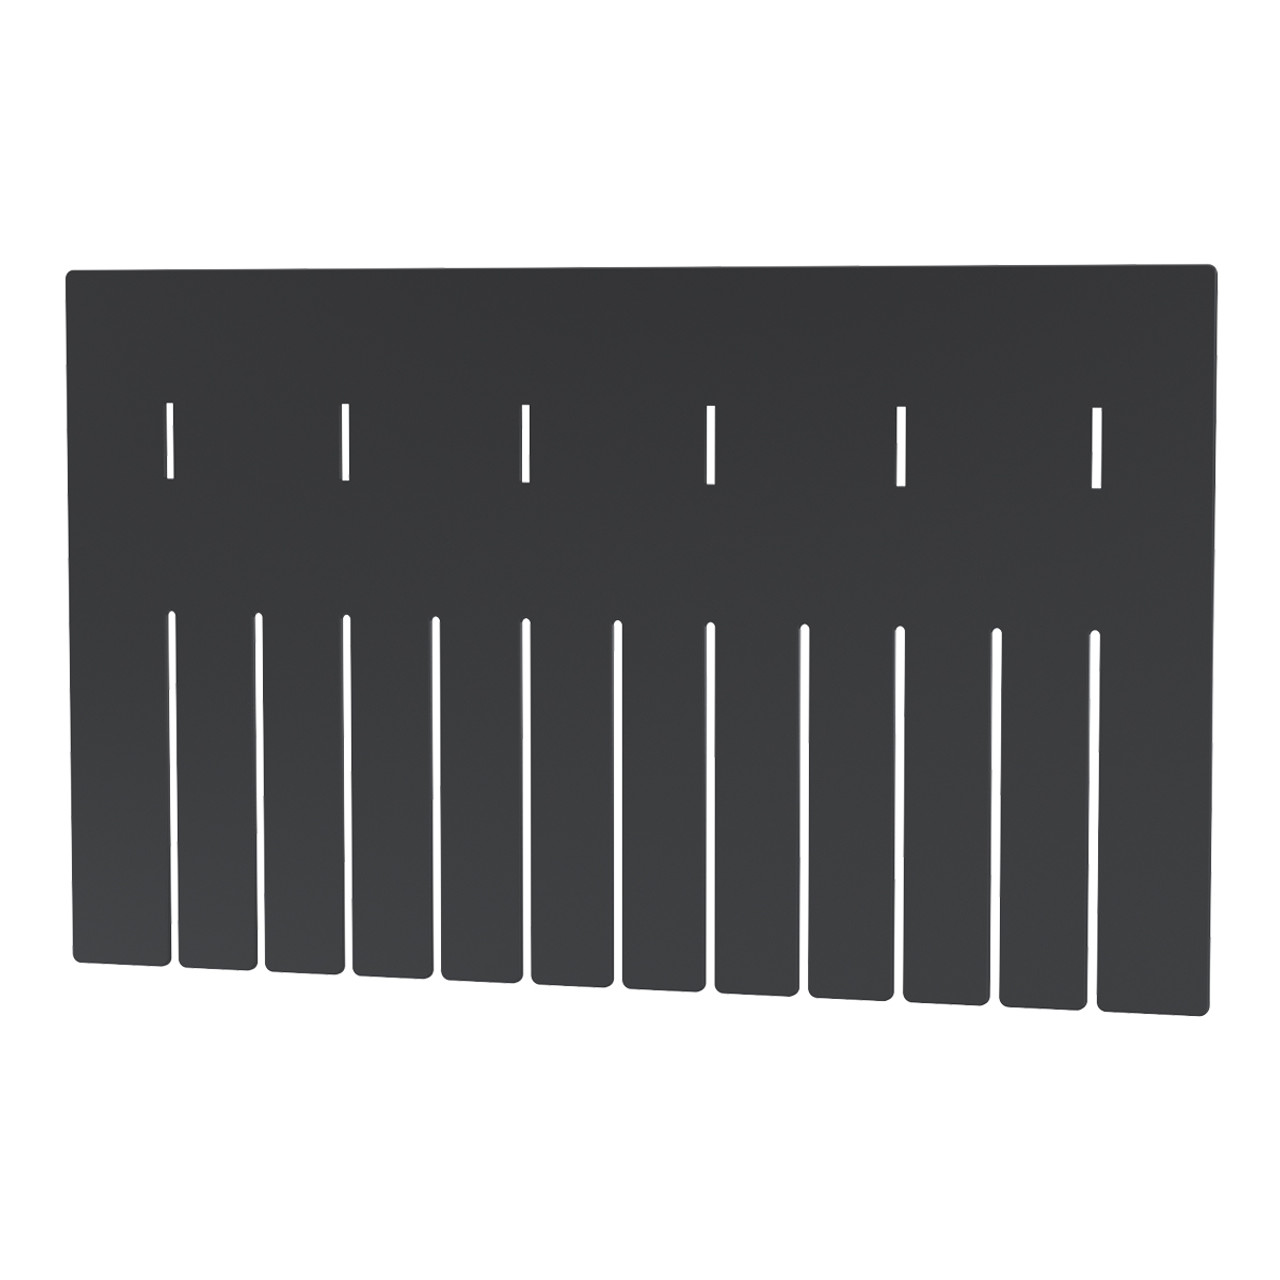 Short Divider for Akro-Grid Box 33220, 6 Pk  41220